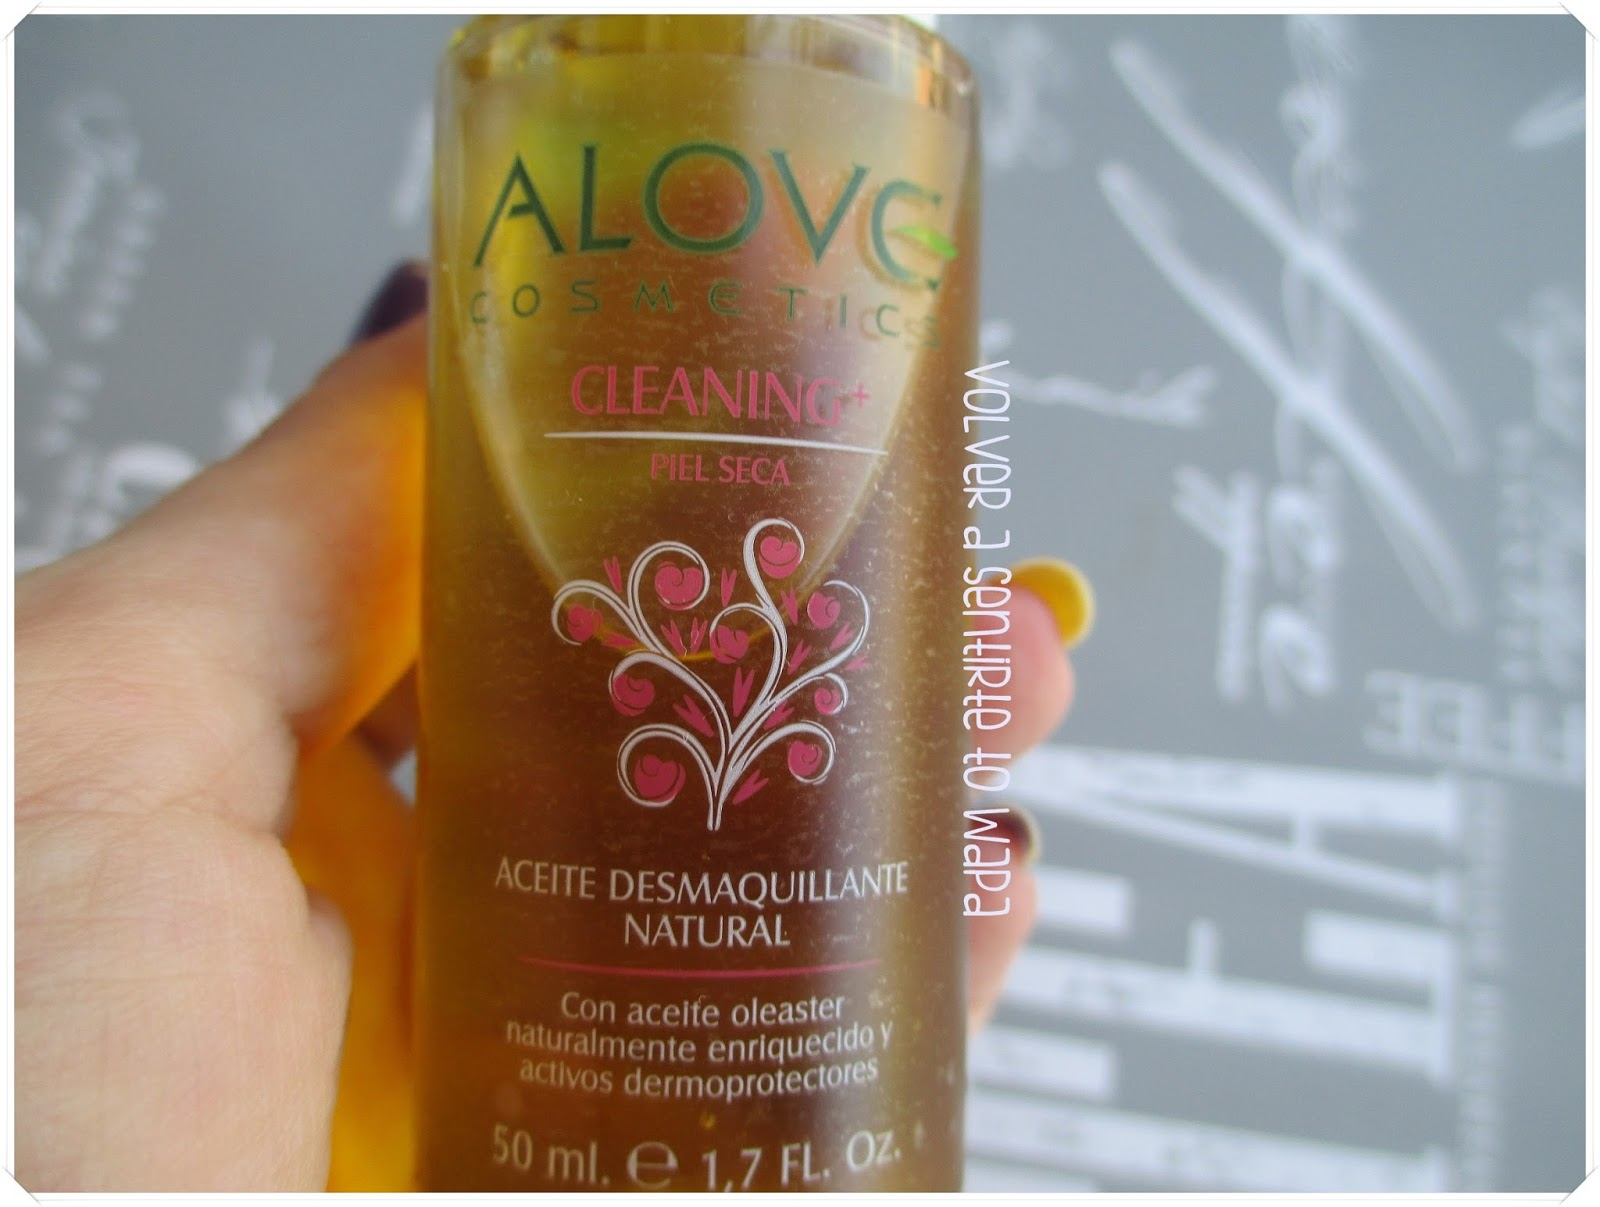 Alove Cosmetics - Gama Cleaning+ - Aceite Desmaquillante Natural